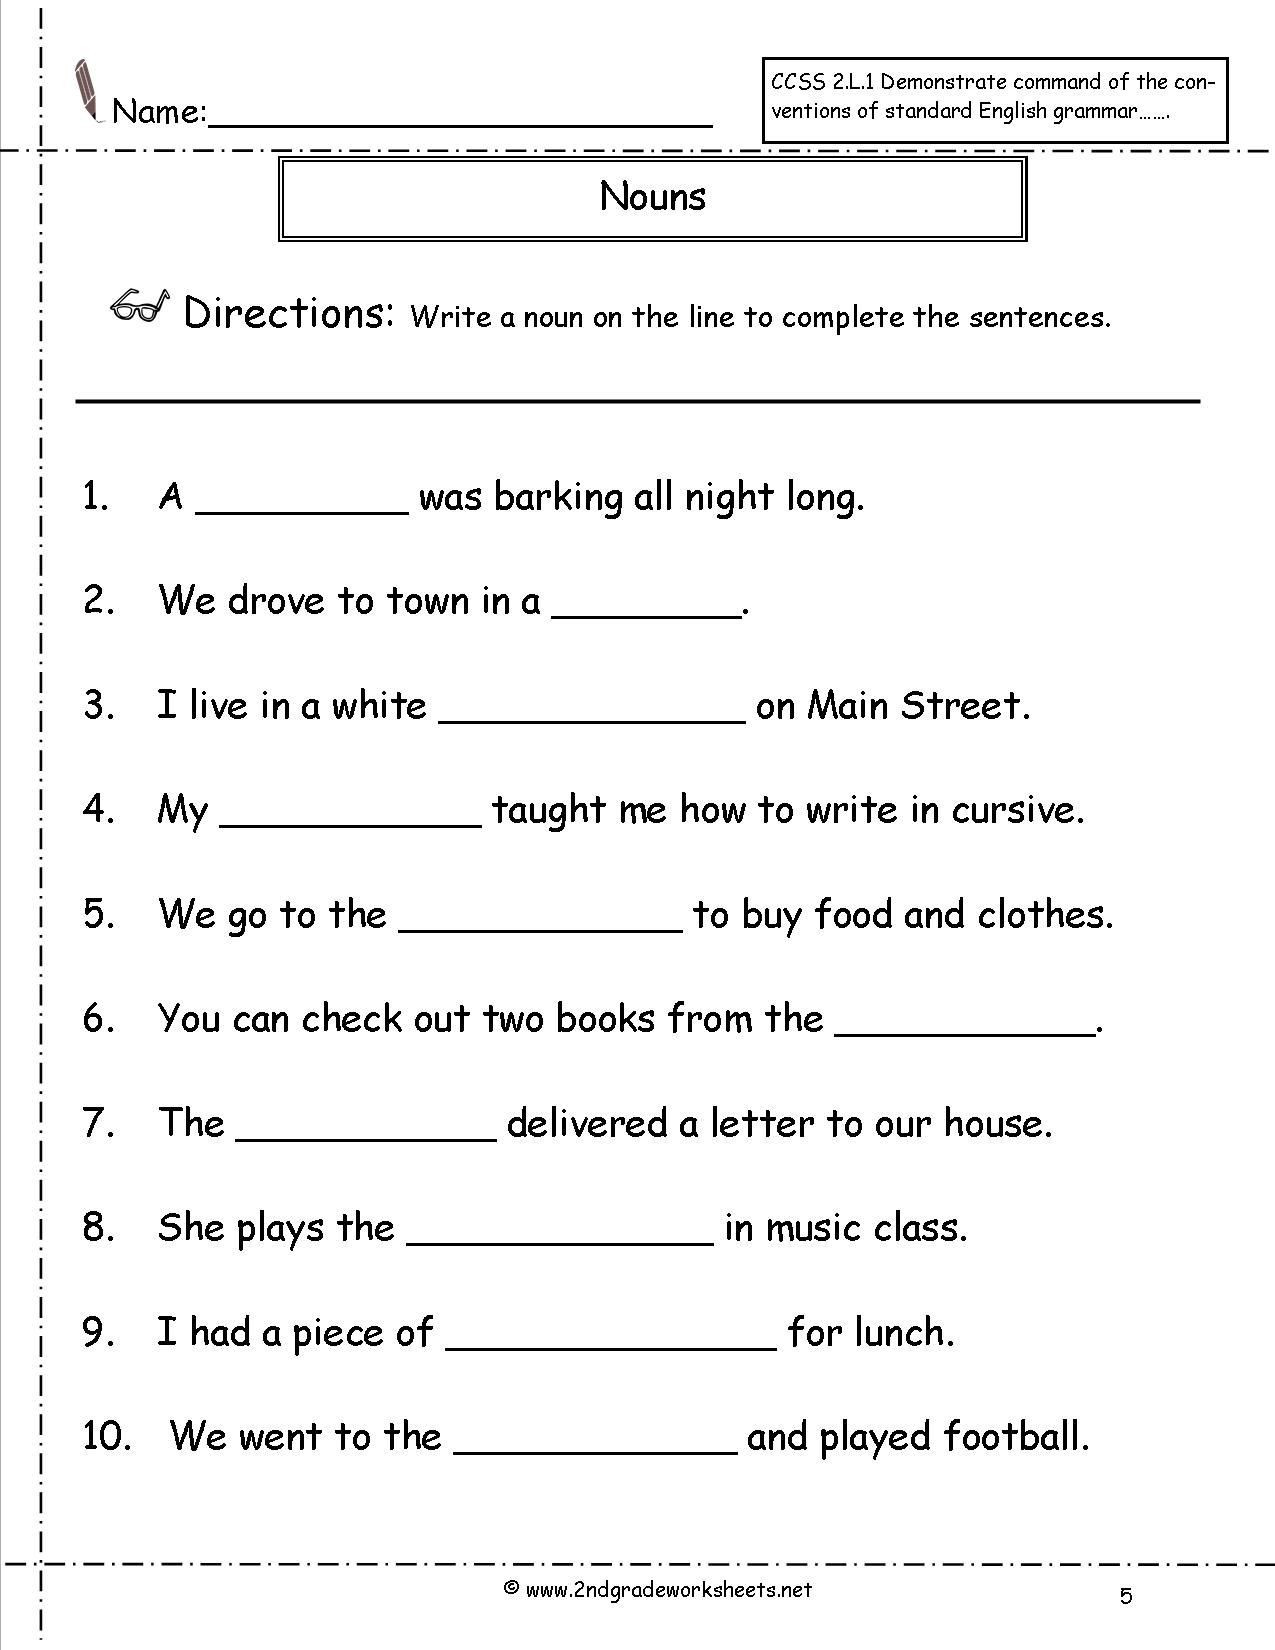 Grammar Worksheets 6th Graders Grammar Worksheets 6th Graders – Worksheet for Kids